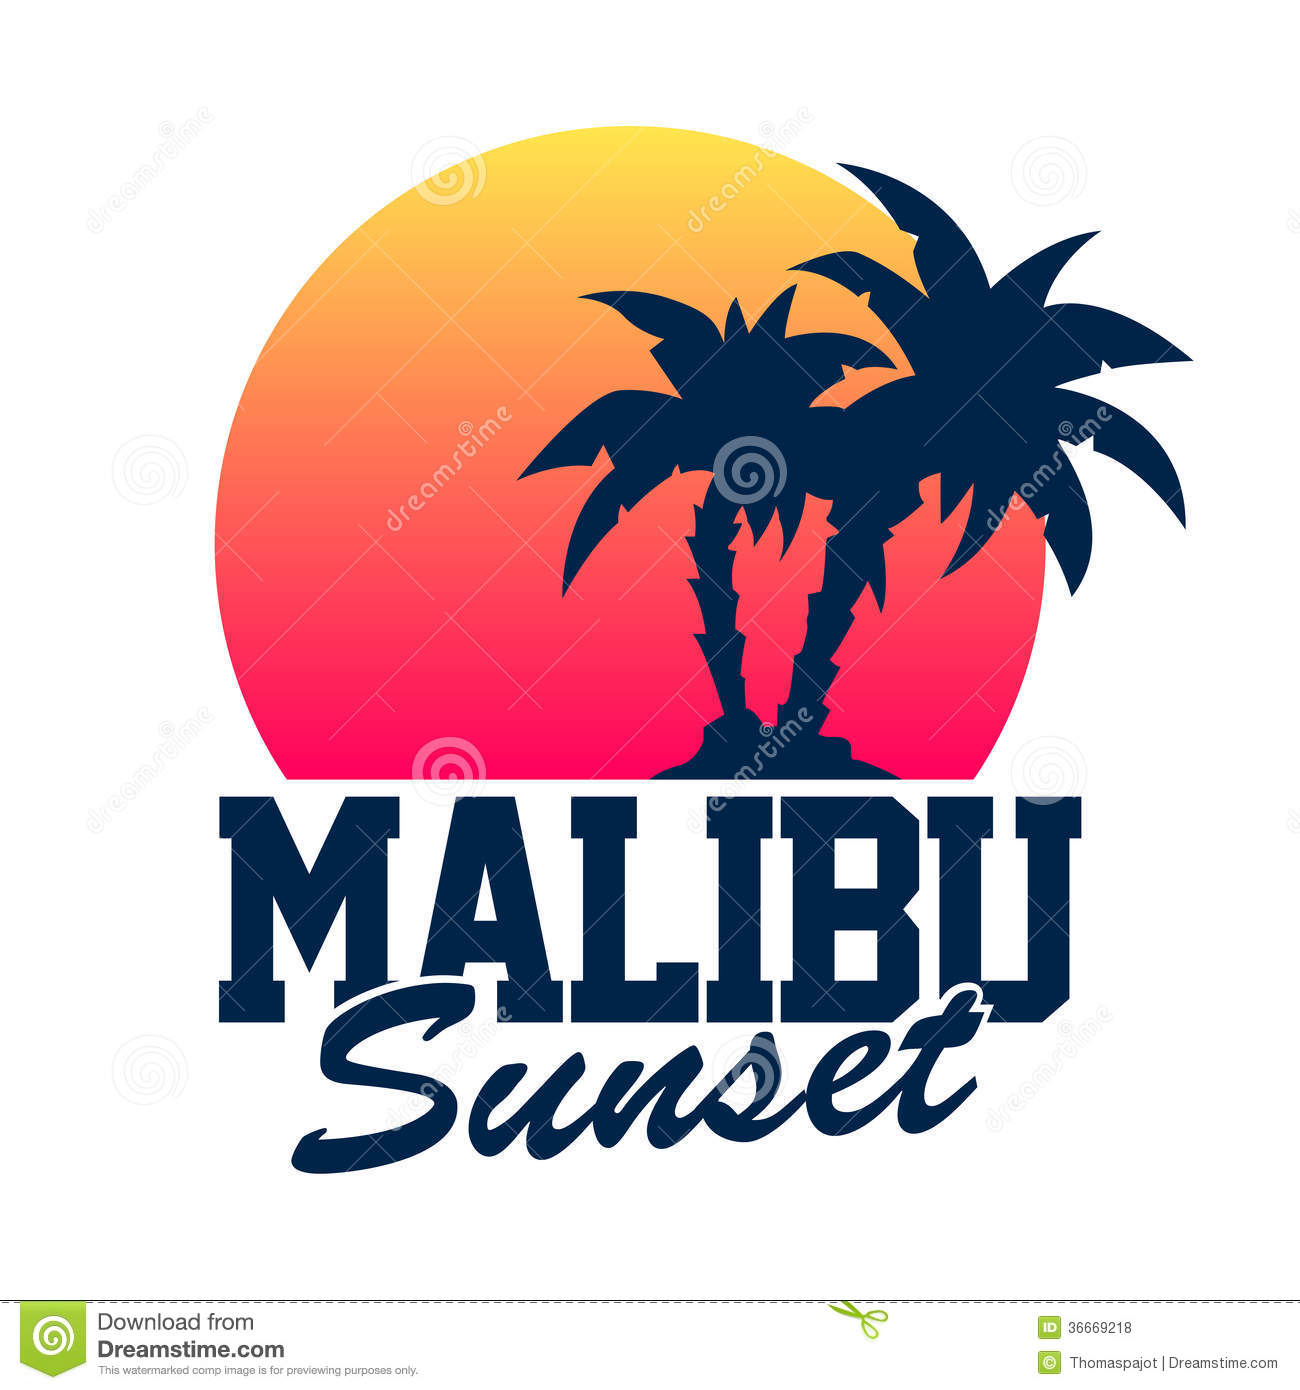 california map vector with Royalty Free Stock Photos Malibu Sunset Vector Illustration Vintage Style Logo Image36669218 on Spilt Ink Clipart together with Antique Oval Frame Clipart besides Location Clipart Vector as well Stock Image Hospital Logo Image15629991 together with Stock Photo Sick Female Having Ear Pain Touching Her Painful Head Tinnitus Closeup Up Side Profile Isolated Blue Background Image56024262.